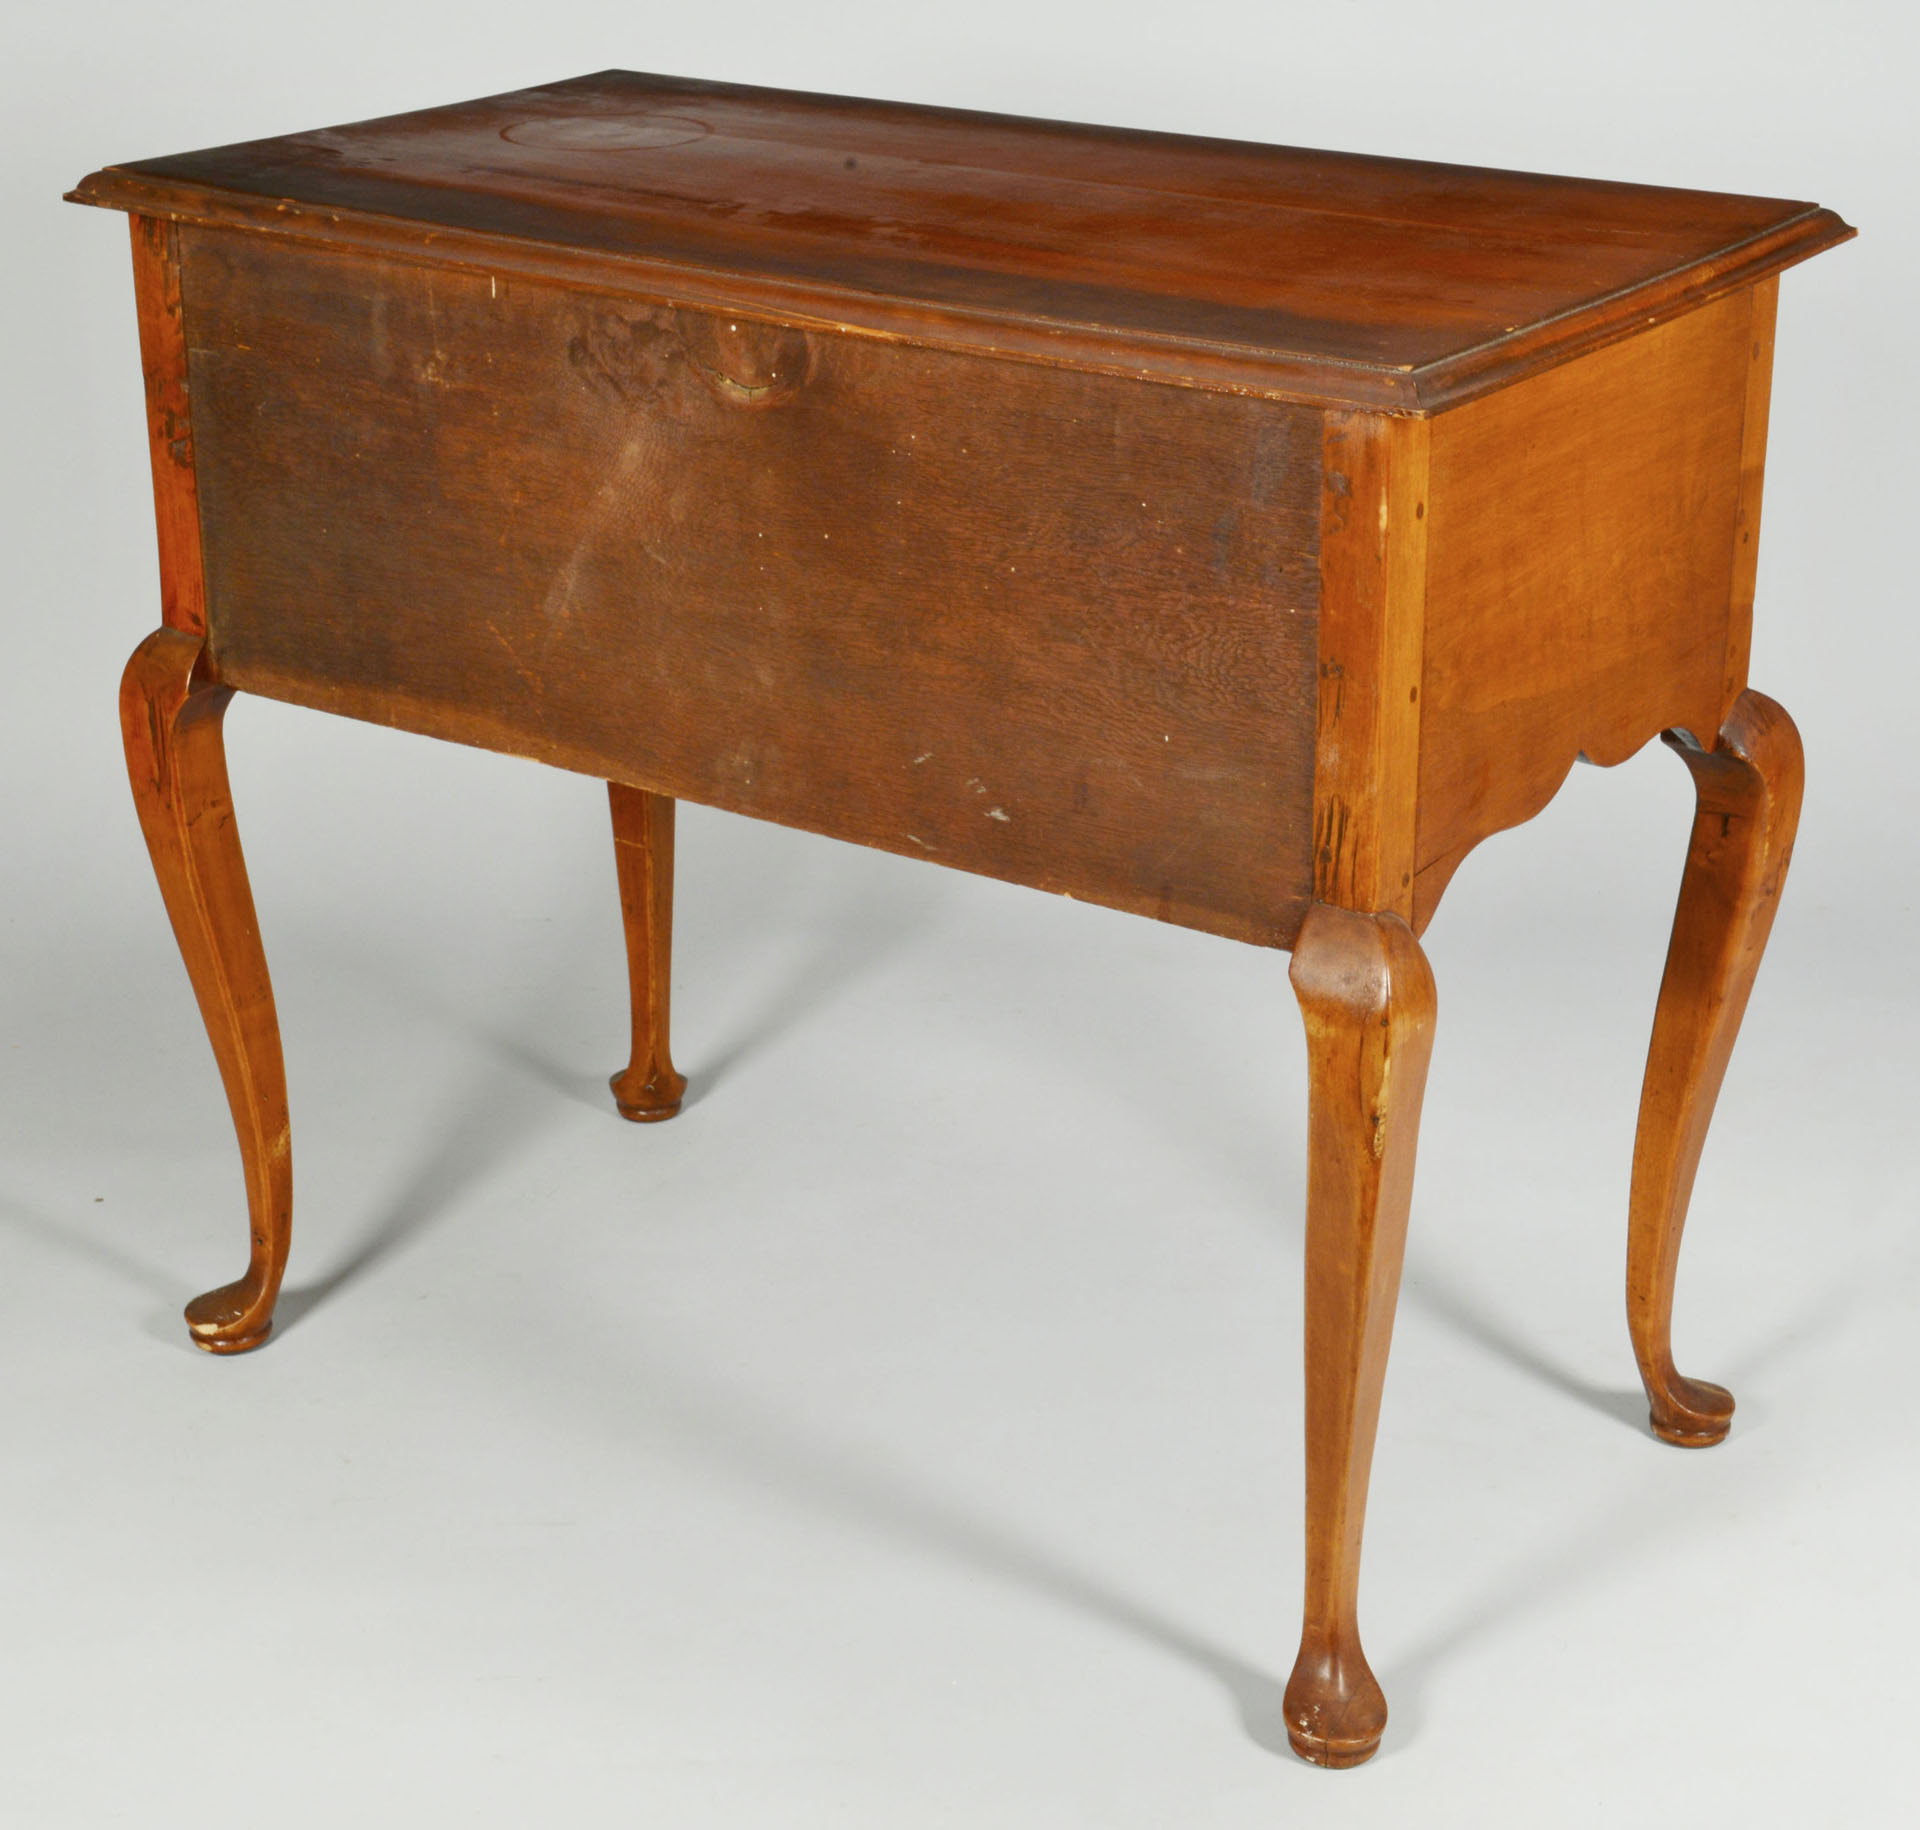 18th century cherry lowboy or dressing table